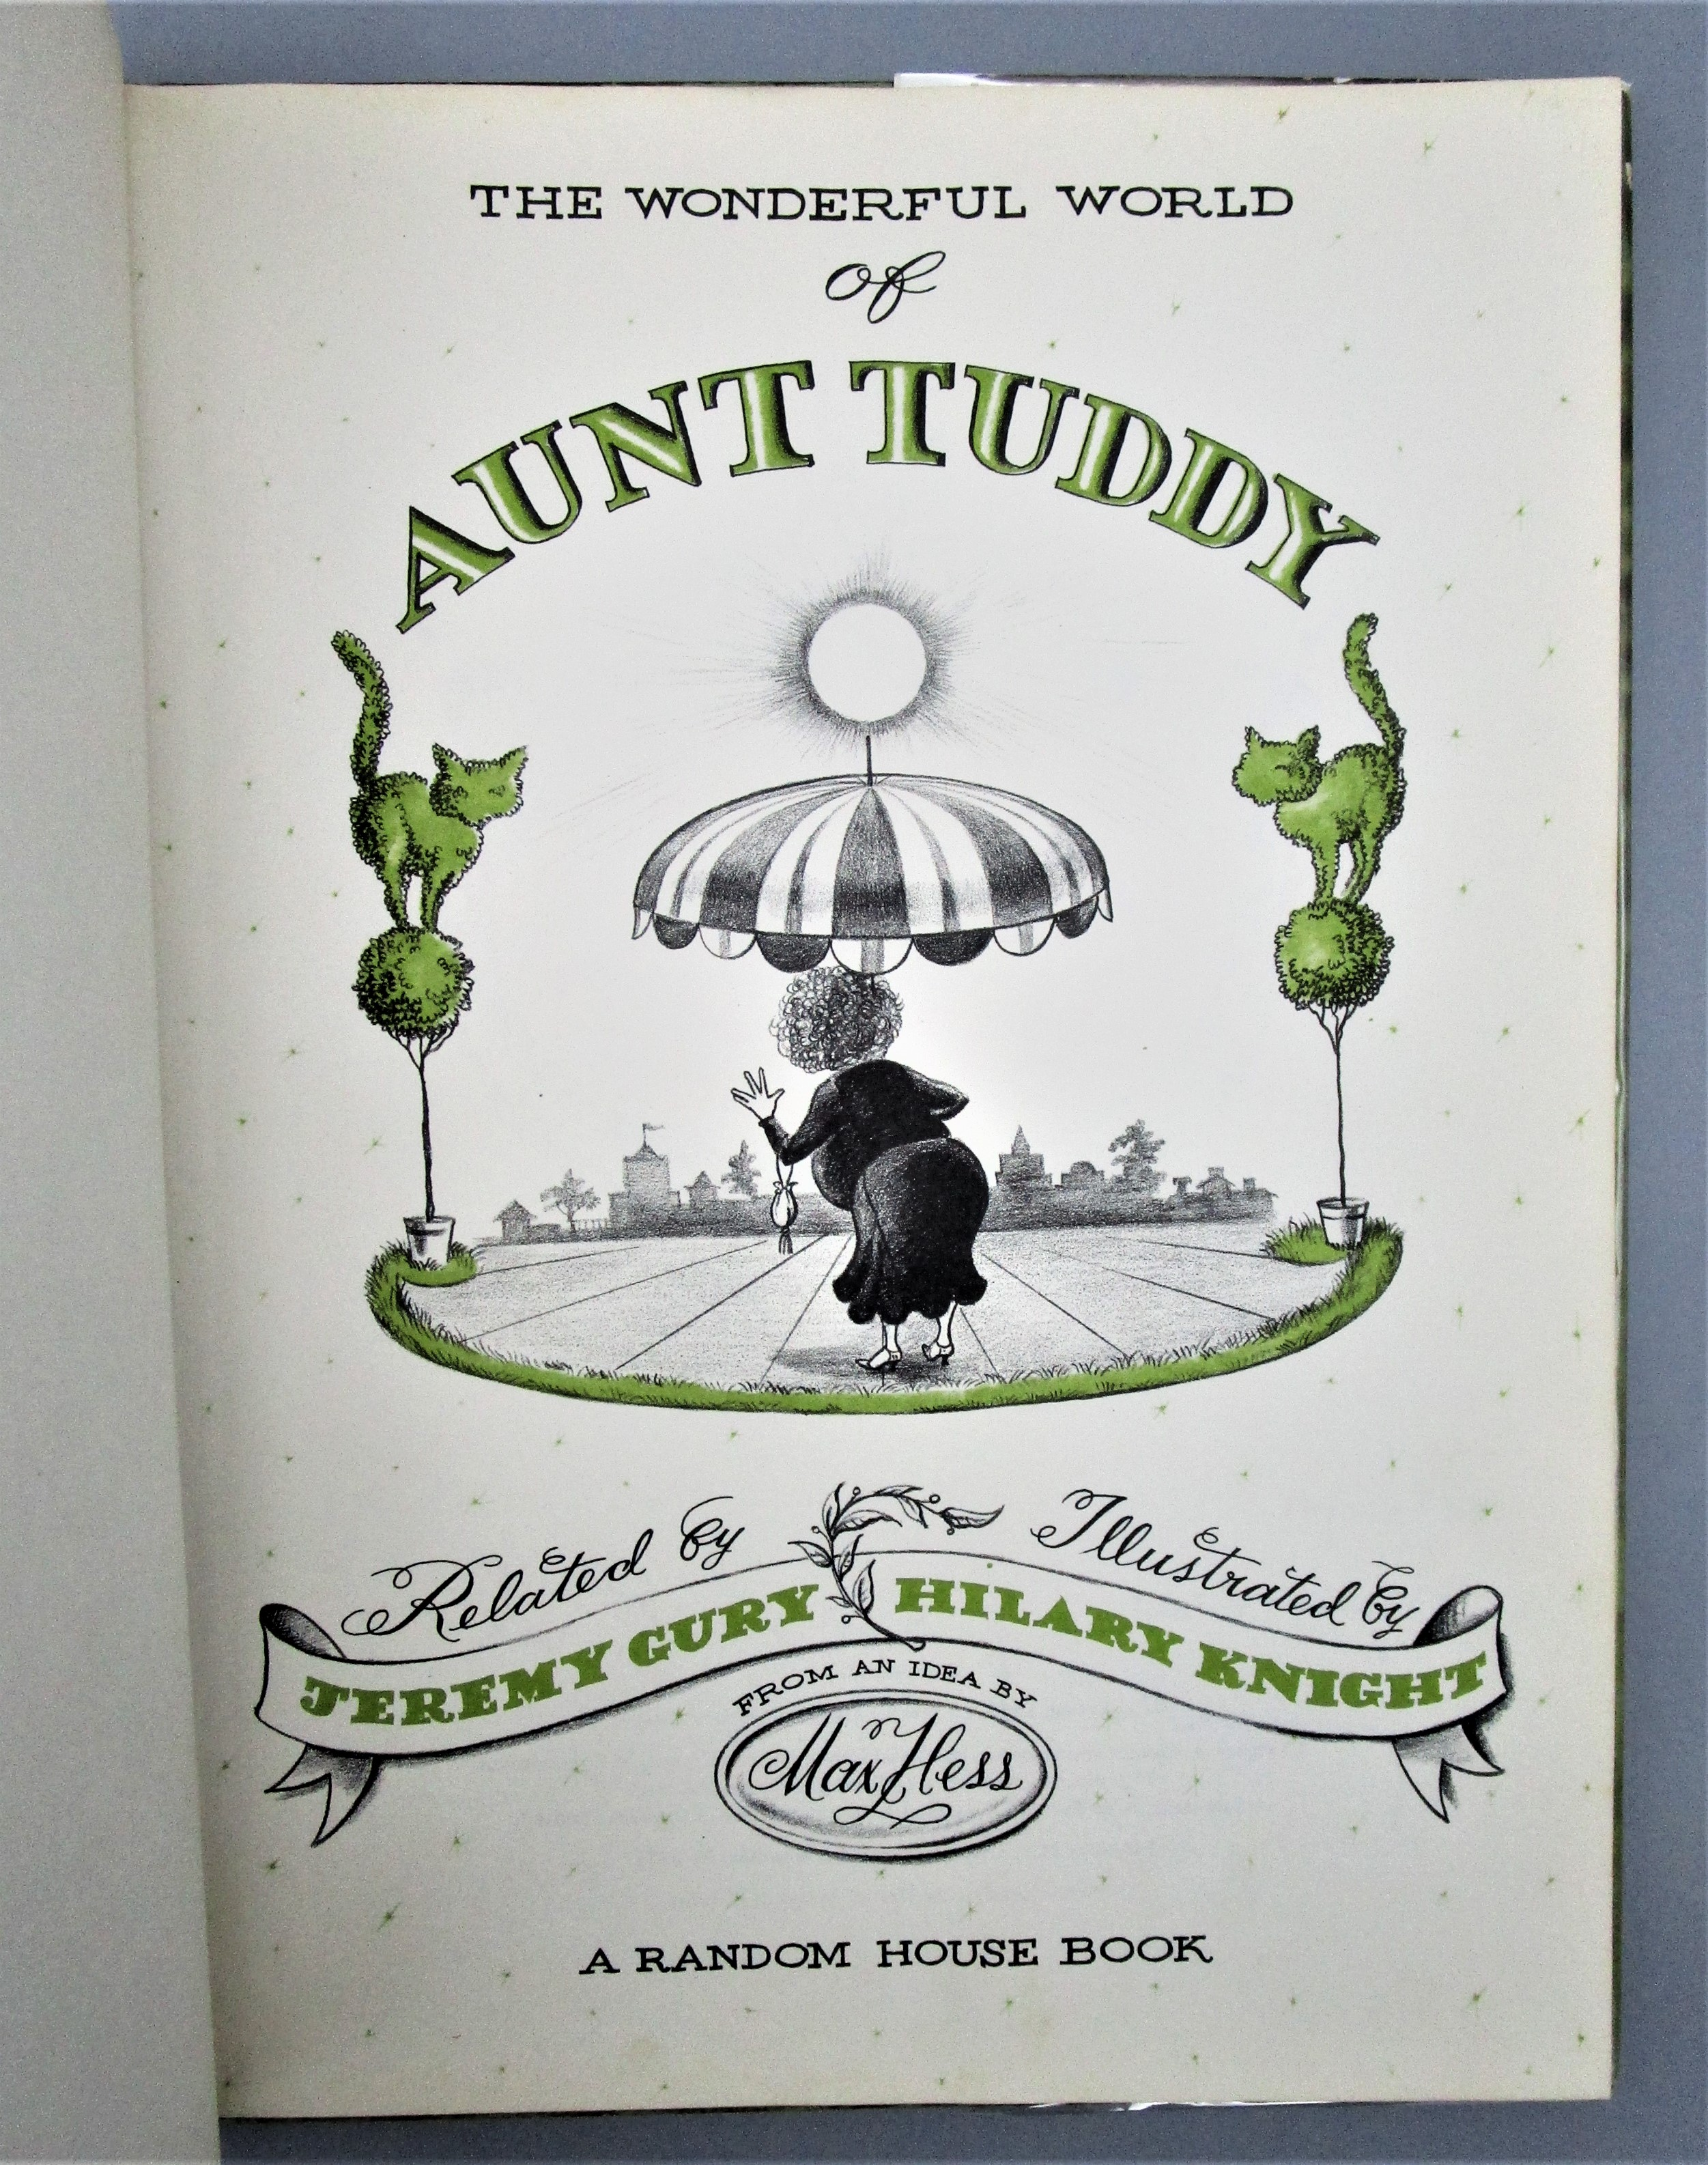 WONDERFUL WORLD OF AUNT TUDDY, by J.Gury & H.Knight - 1958 [Signed 1st Ed]